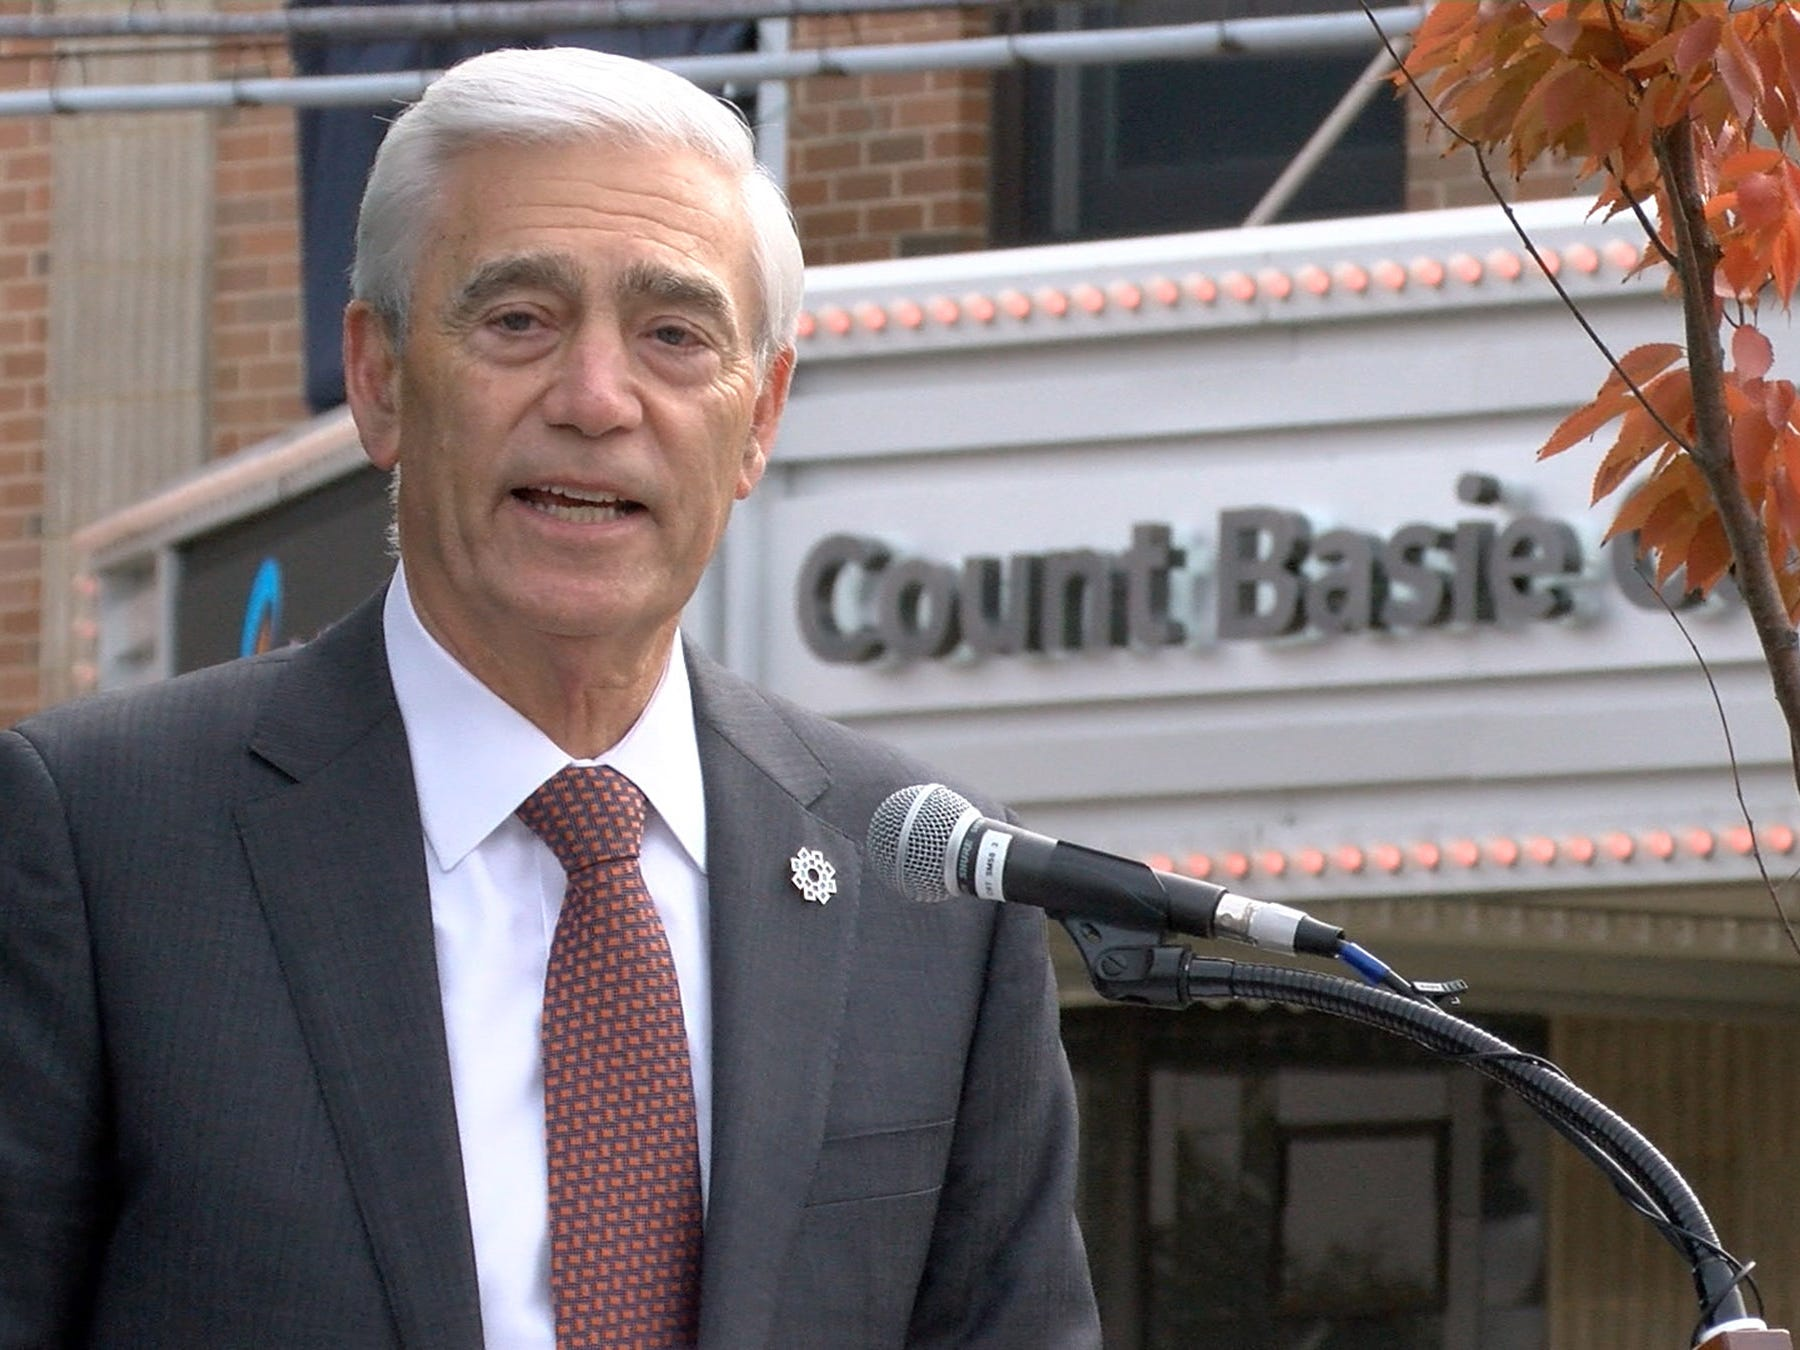 Hackensack Meridian Health Co-CEO John Lloyd speaks about the new partnership with the Count Baise Theatre for the Arts during a ceremony Friday, October 26, 2018, in Red Bank.